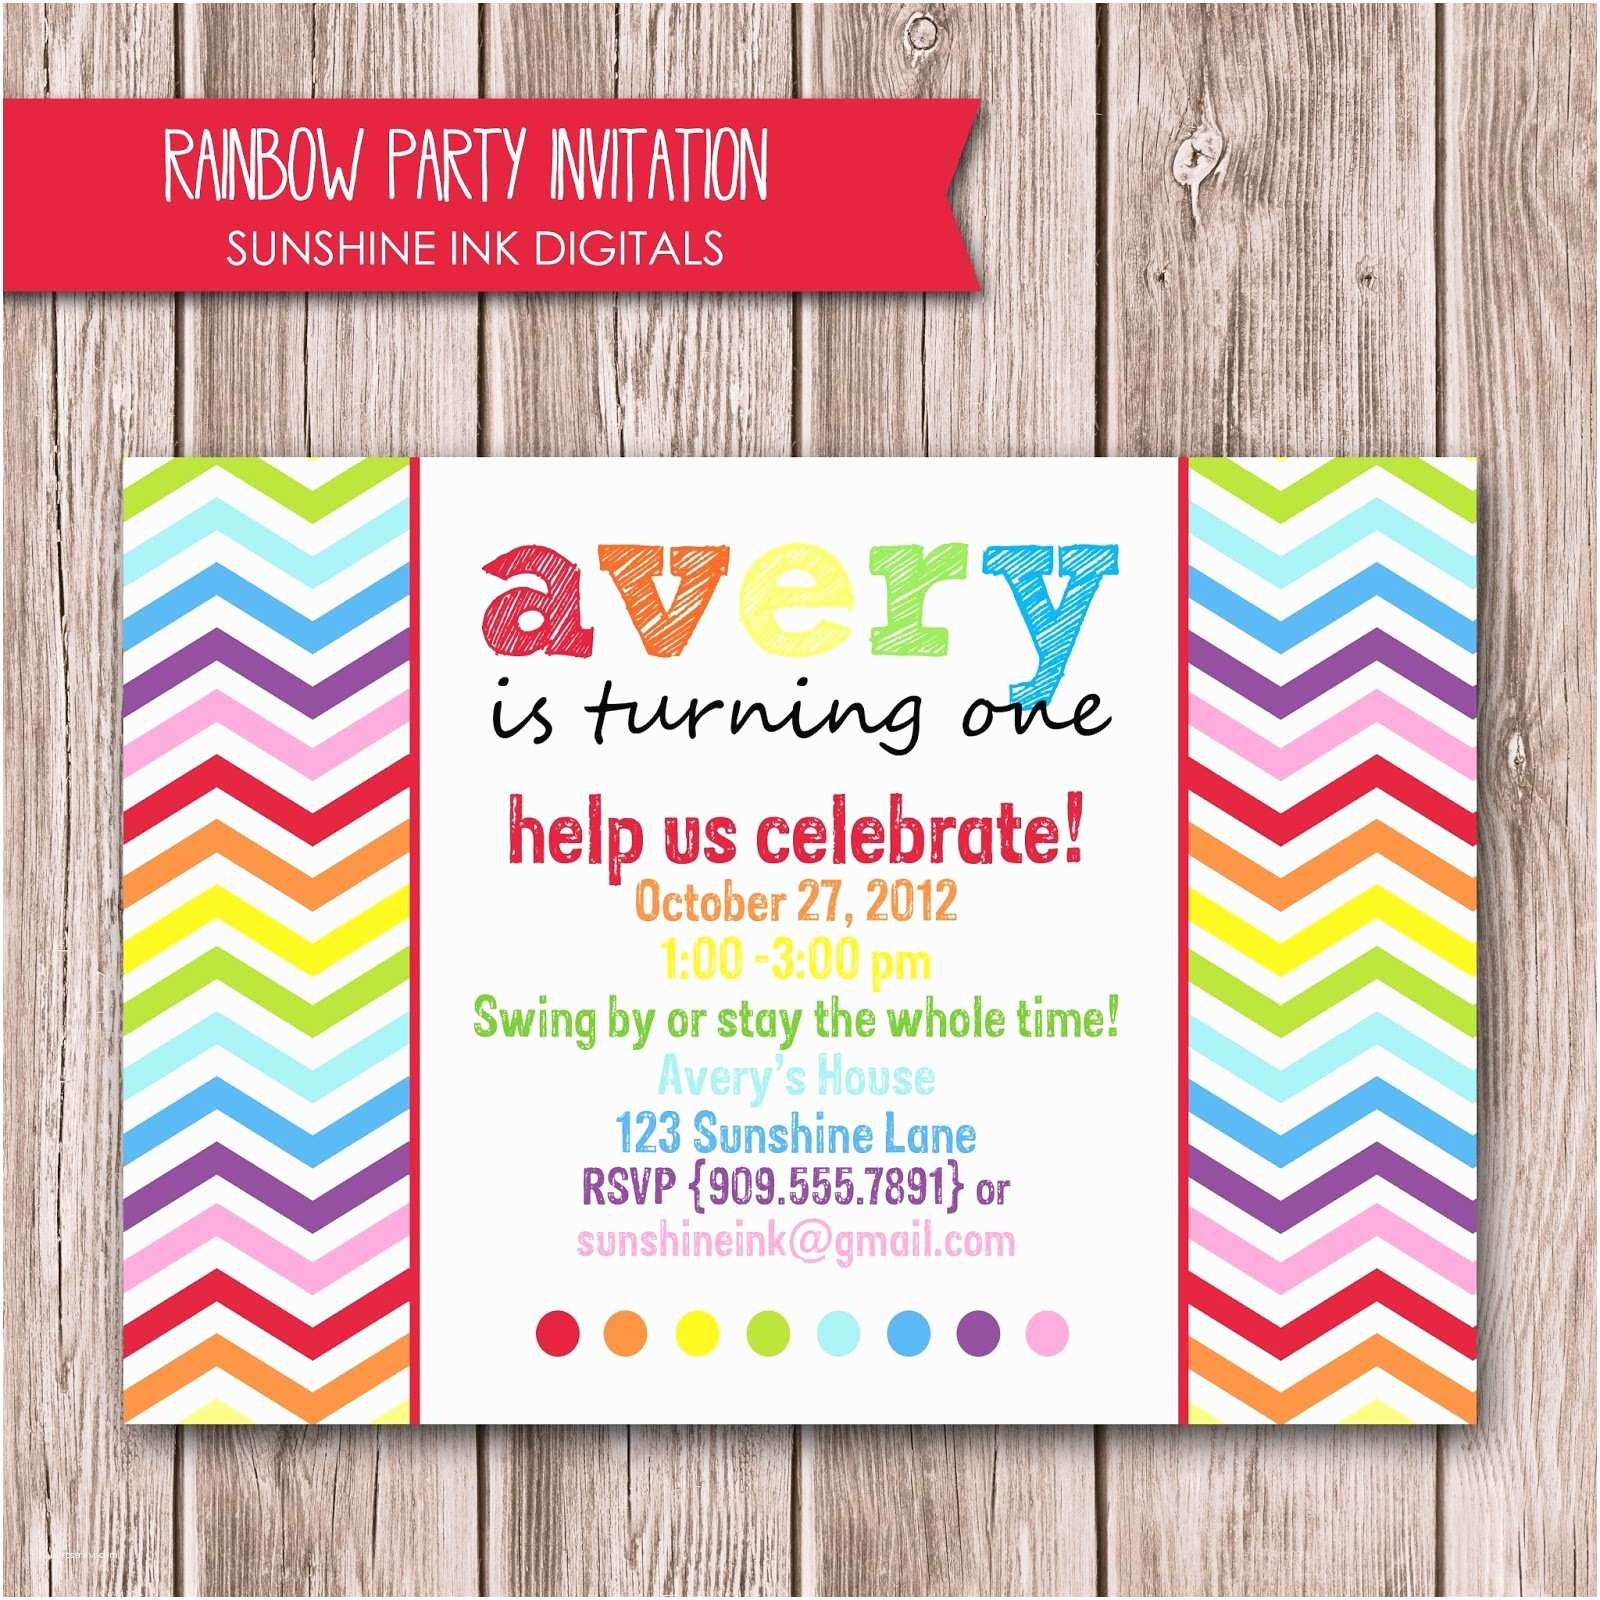 Rainbow Party Invitations Aweddingstoryblog